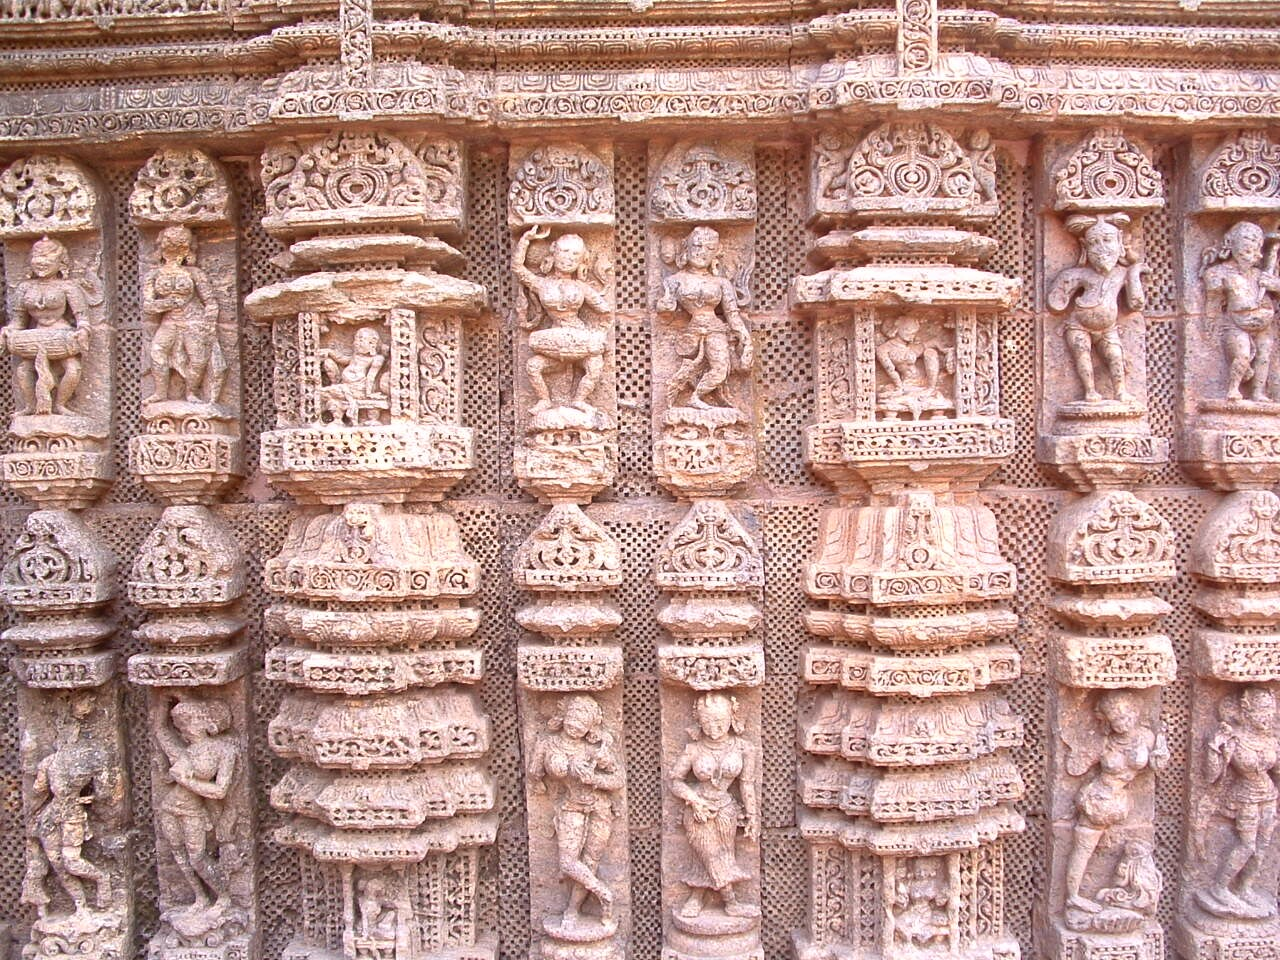 Stone work at Konark Orissa